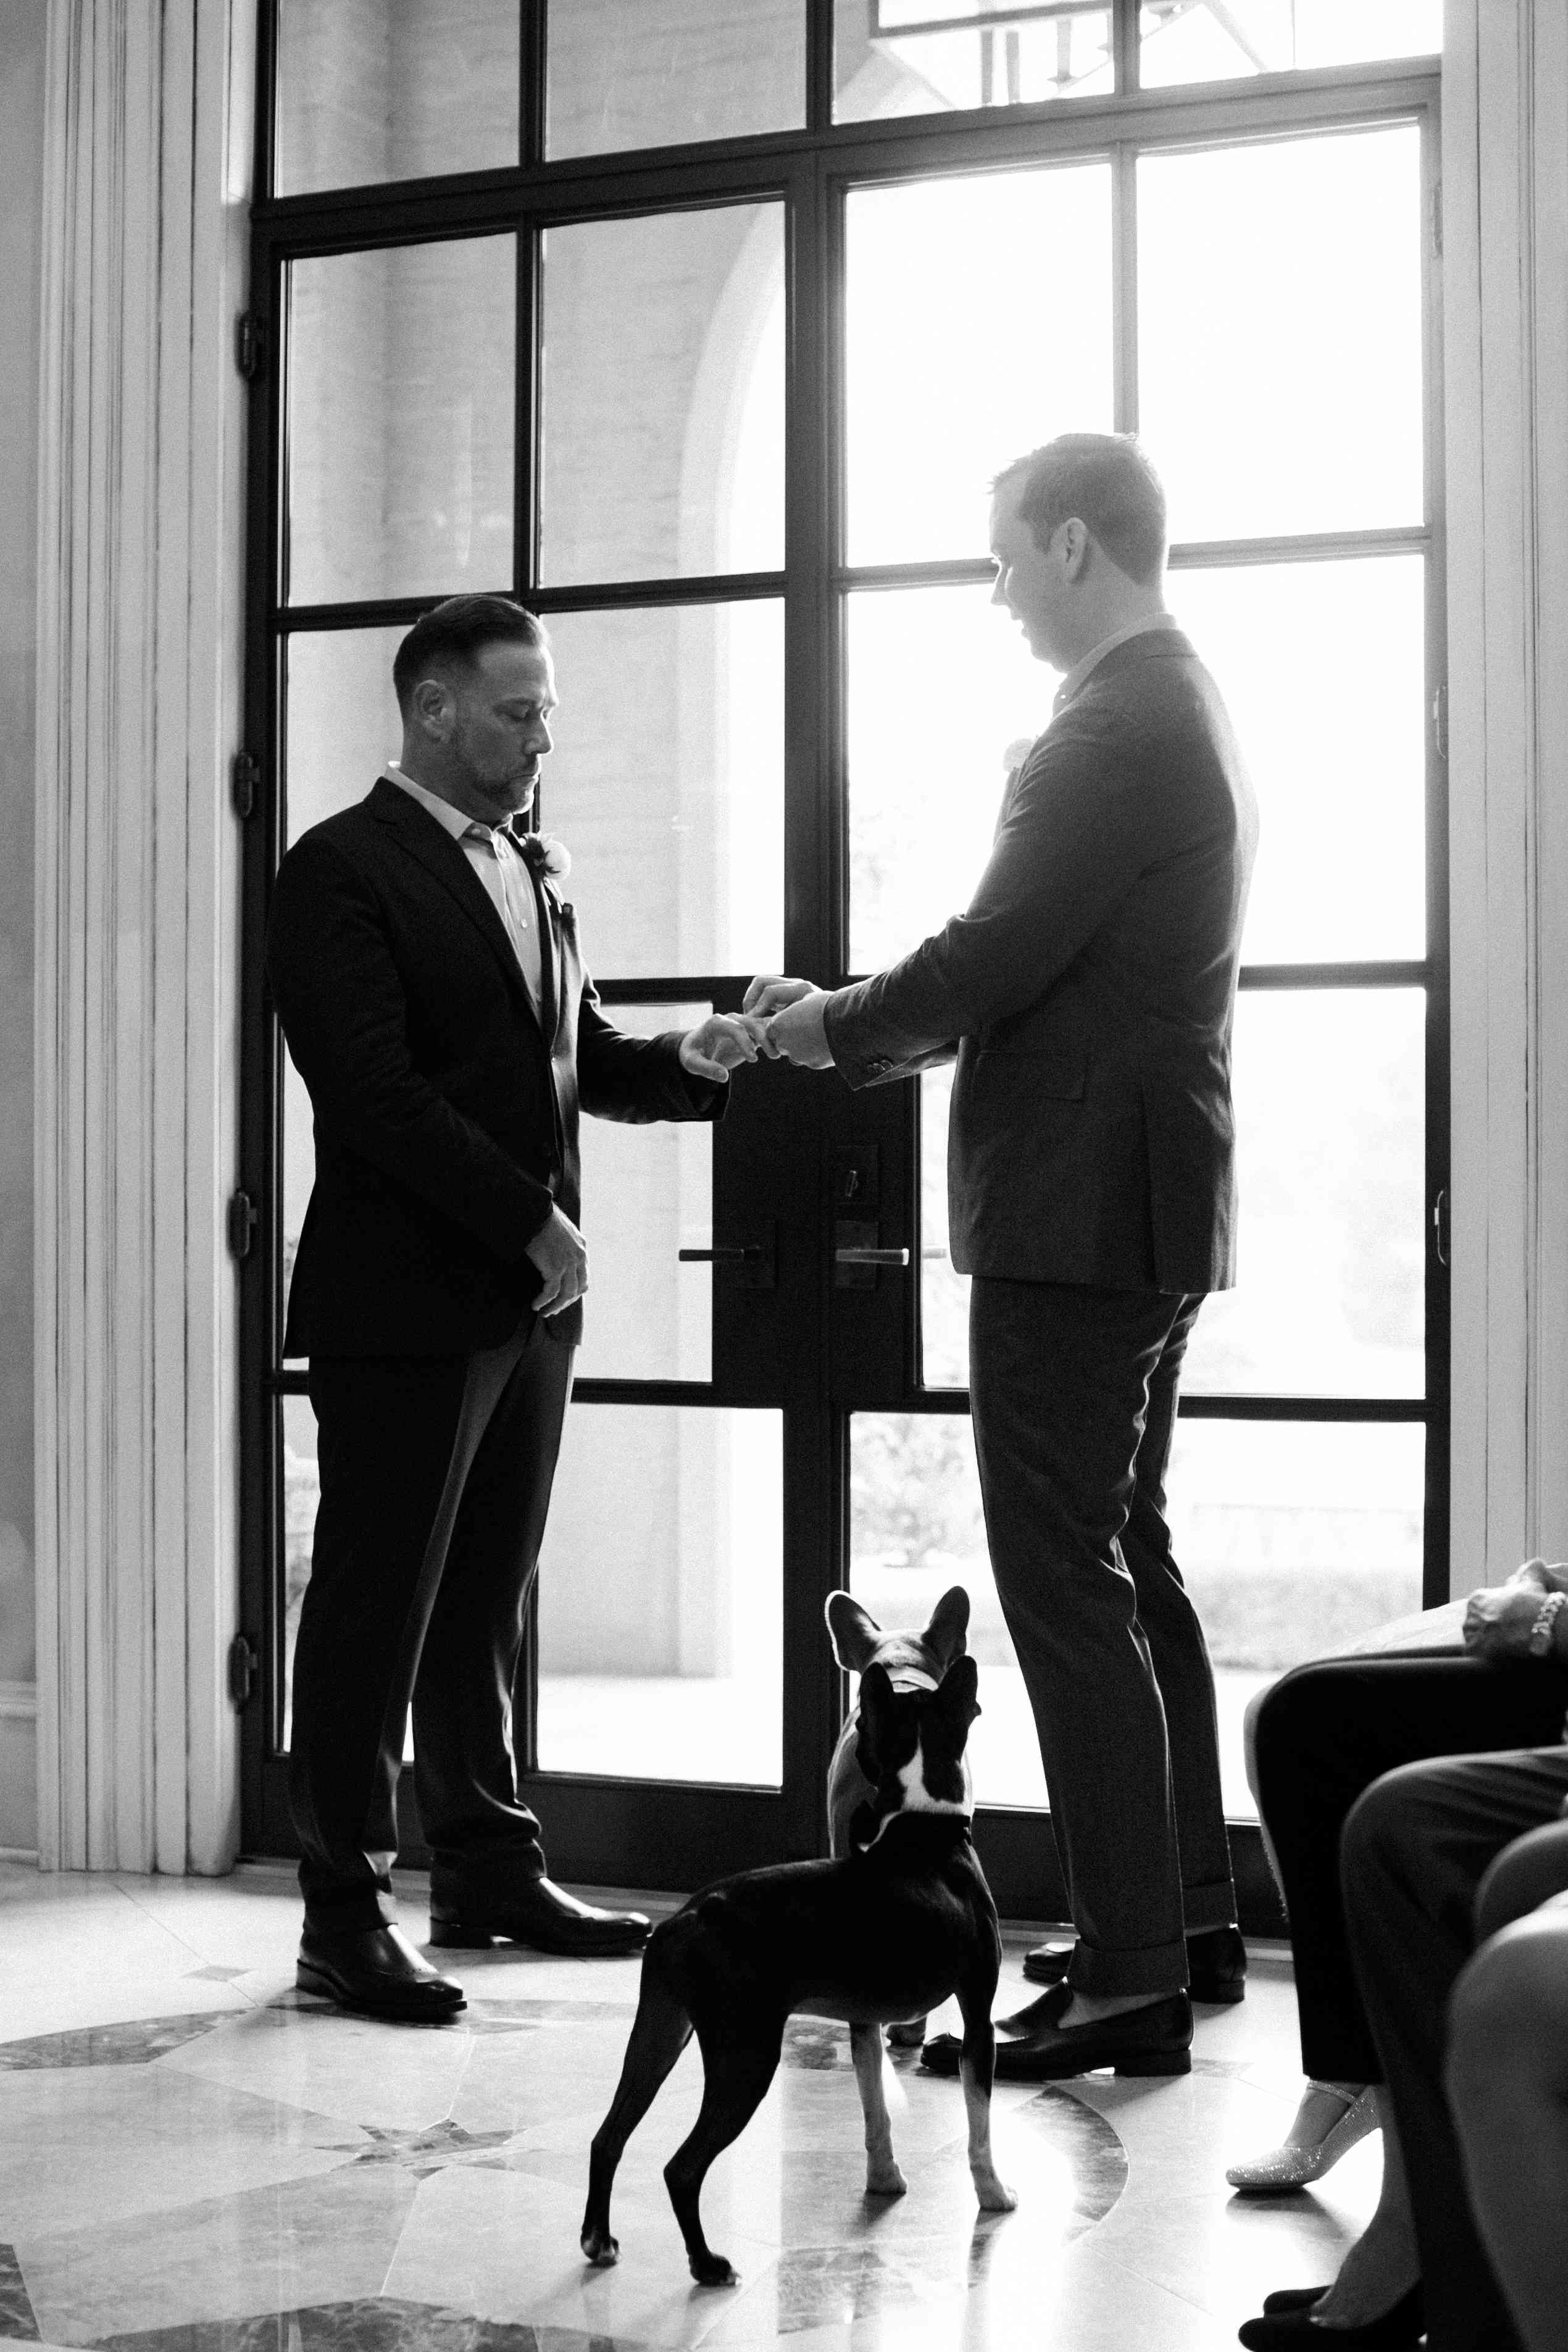 Grooms exchanging rings with dogs at their feet